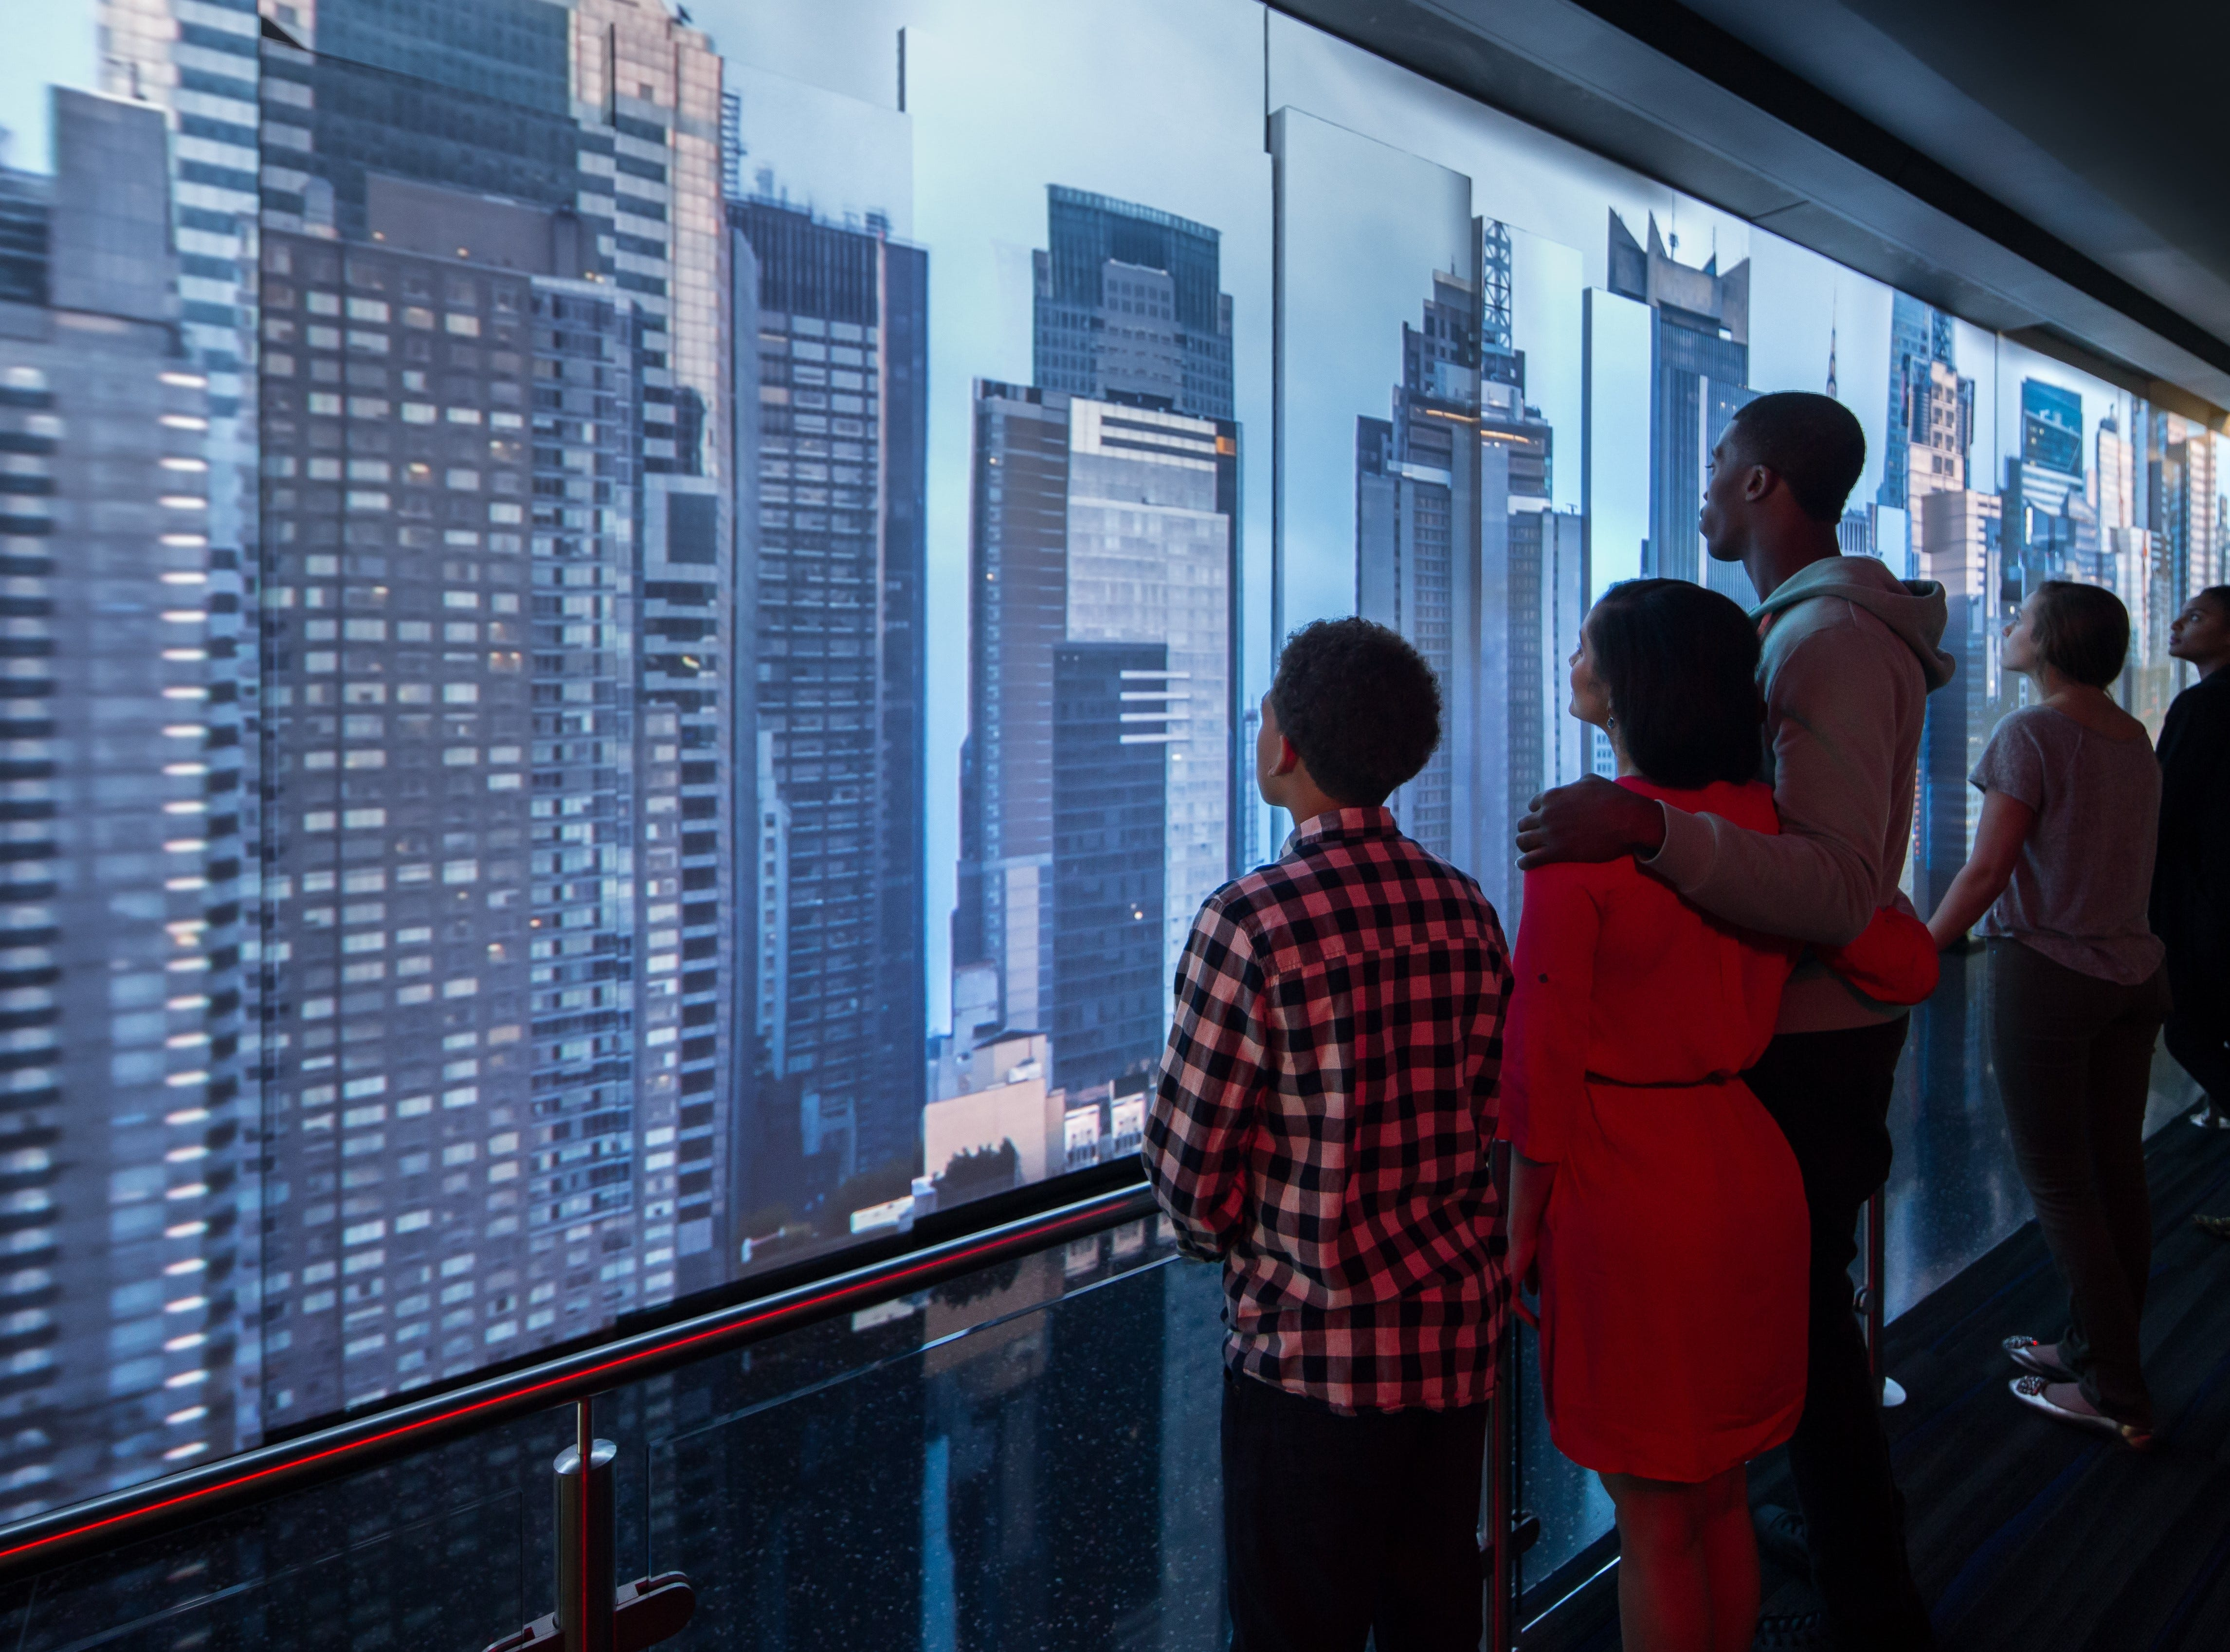 """The """"See Forever Theater"""" presents an animated look at the city before revealing the actual view from the observatory."""